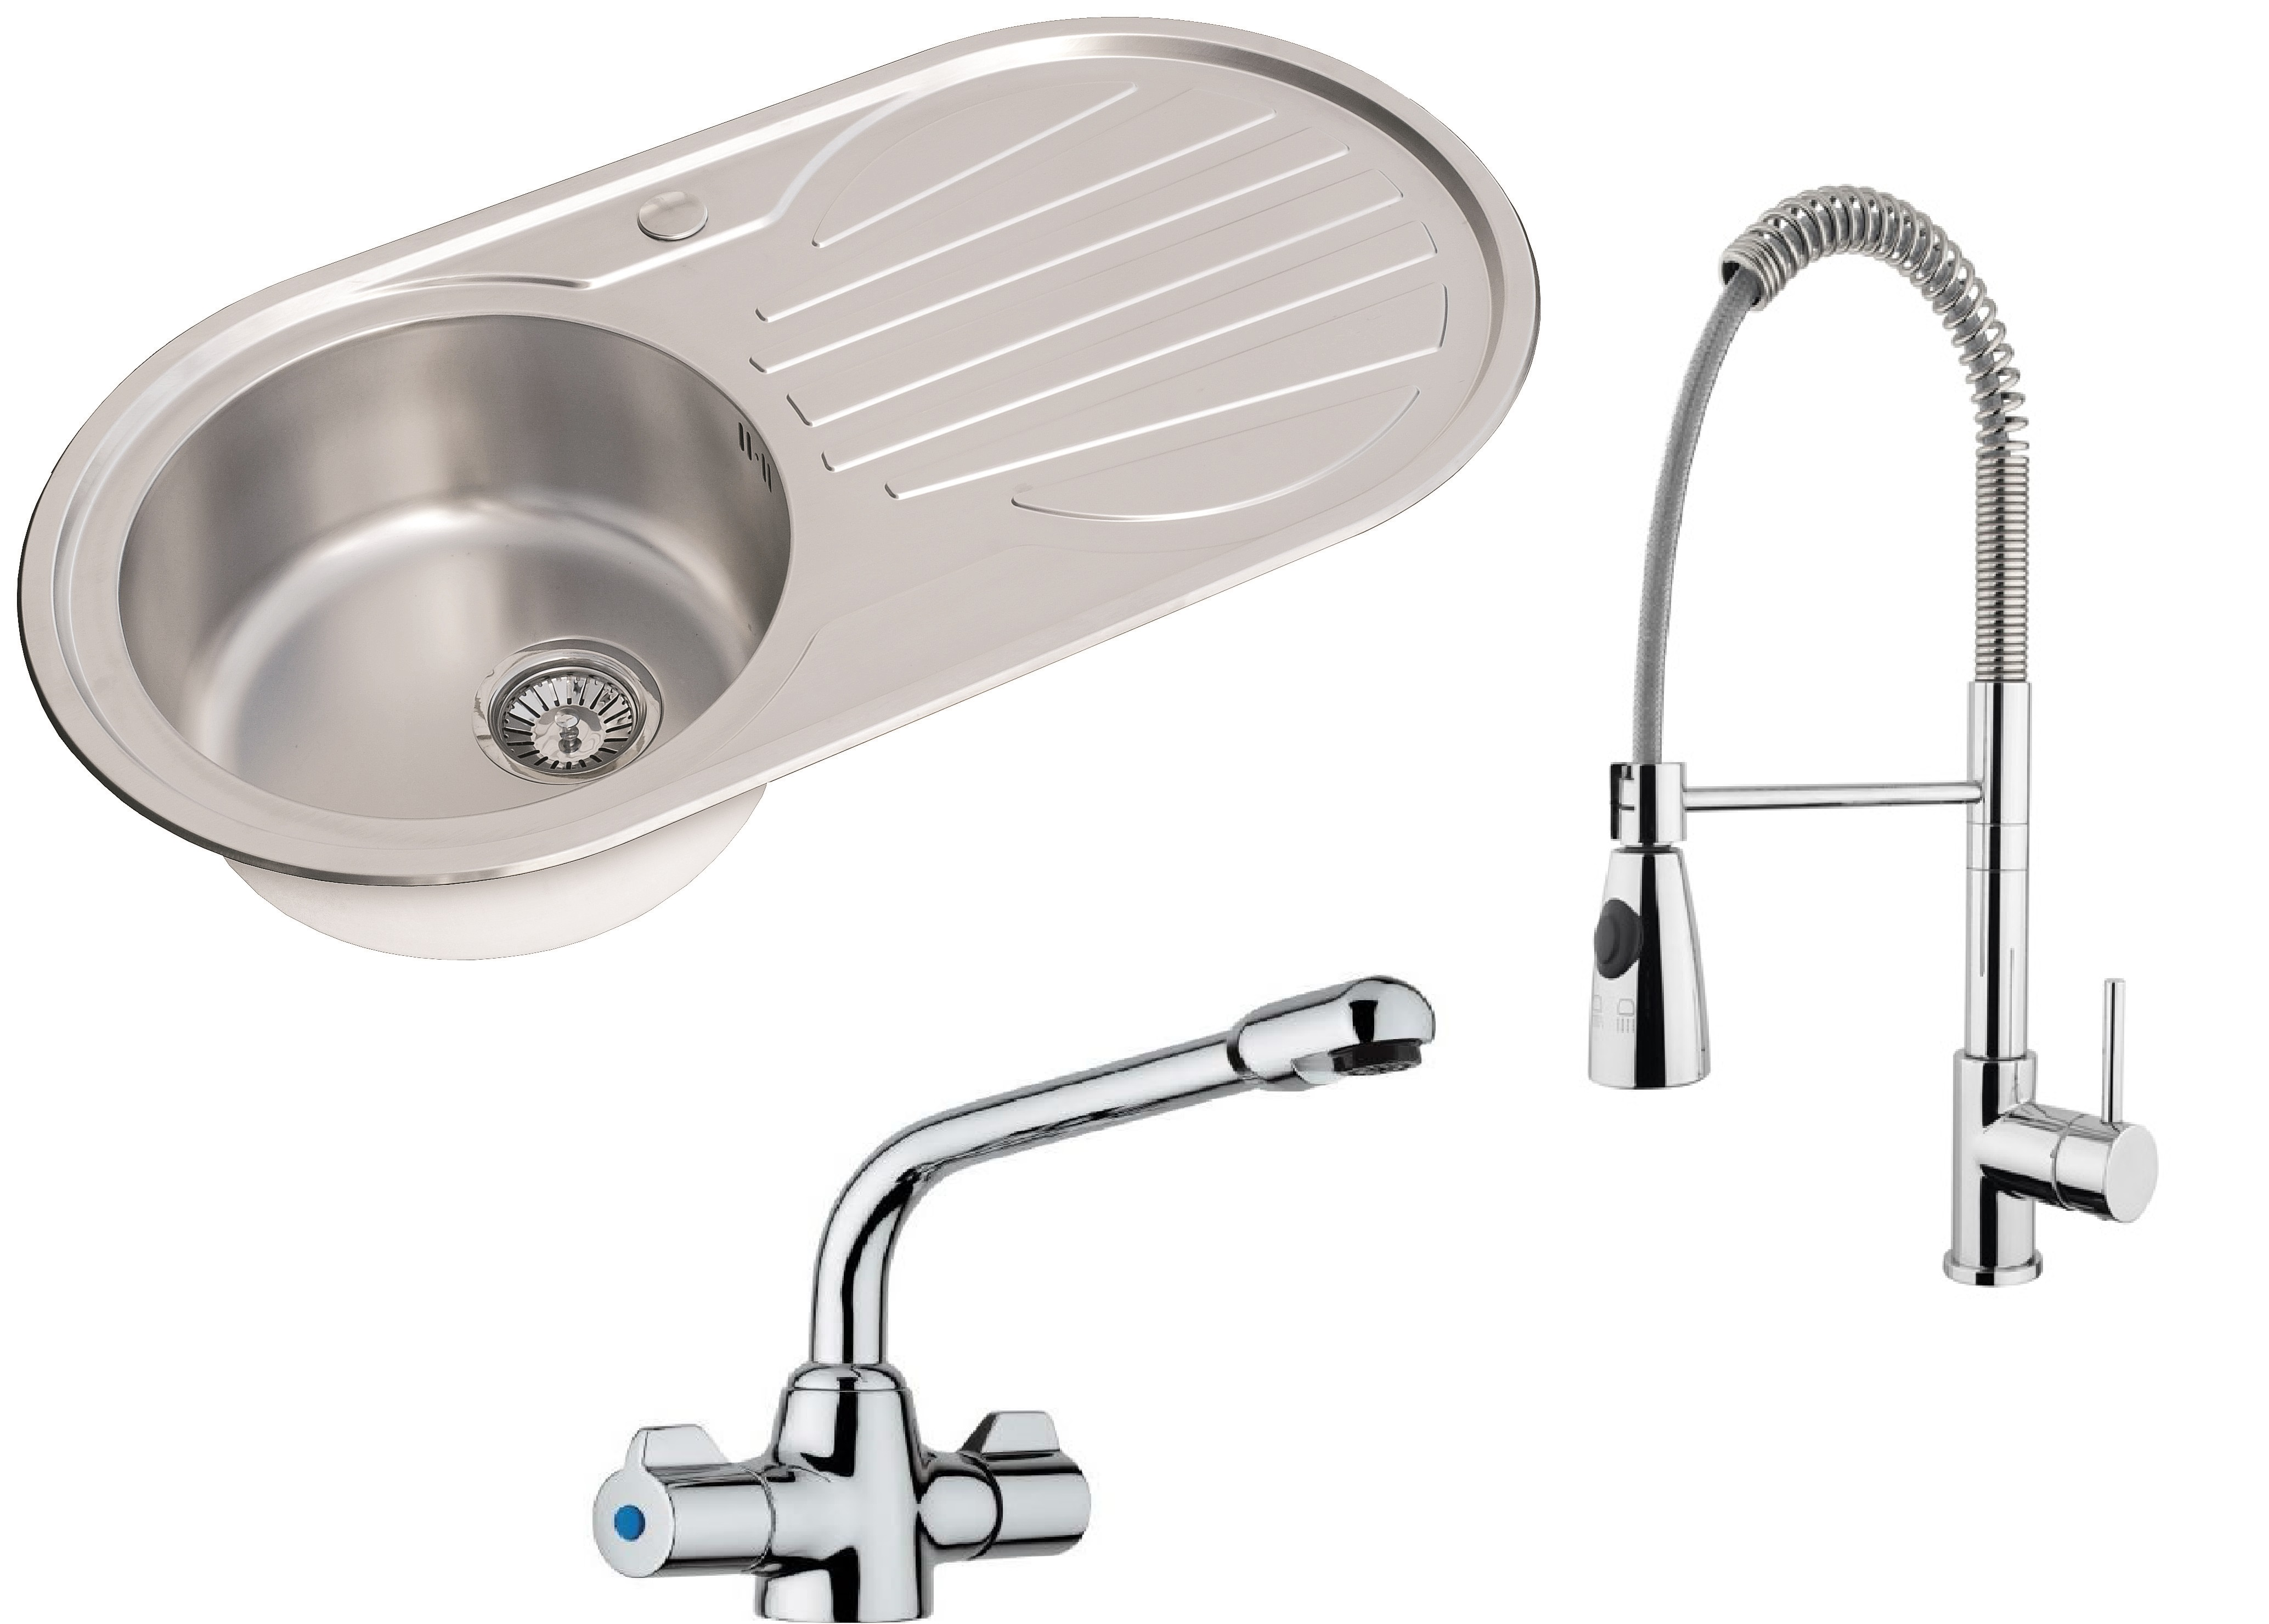 fitting taps to kitchen sink kitchen components direct high quality kitchen fittings 8938